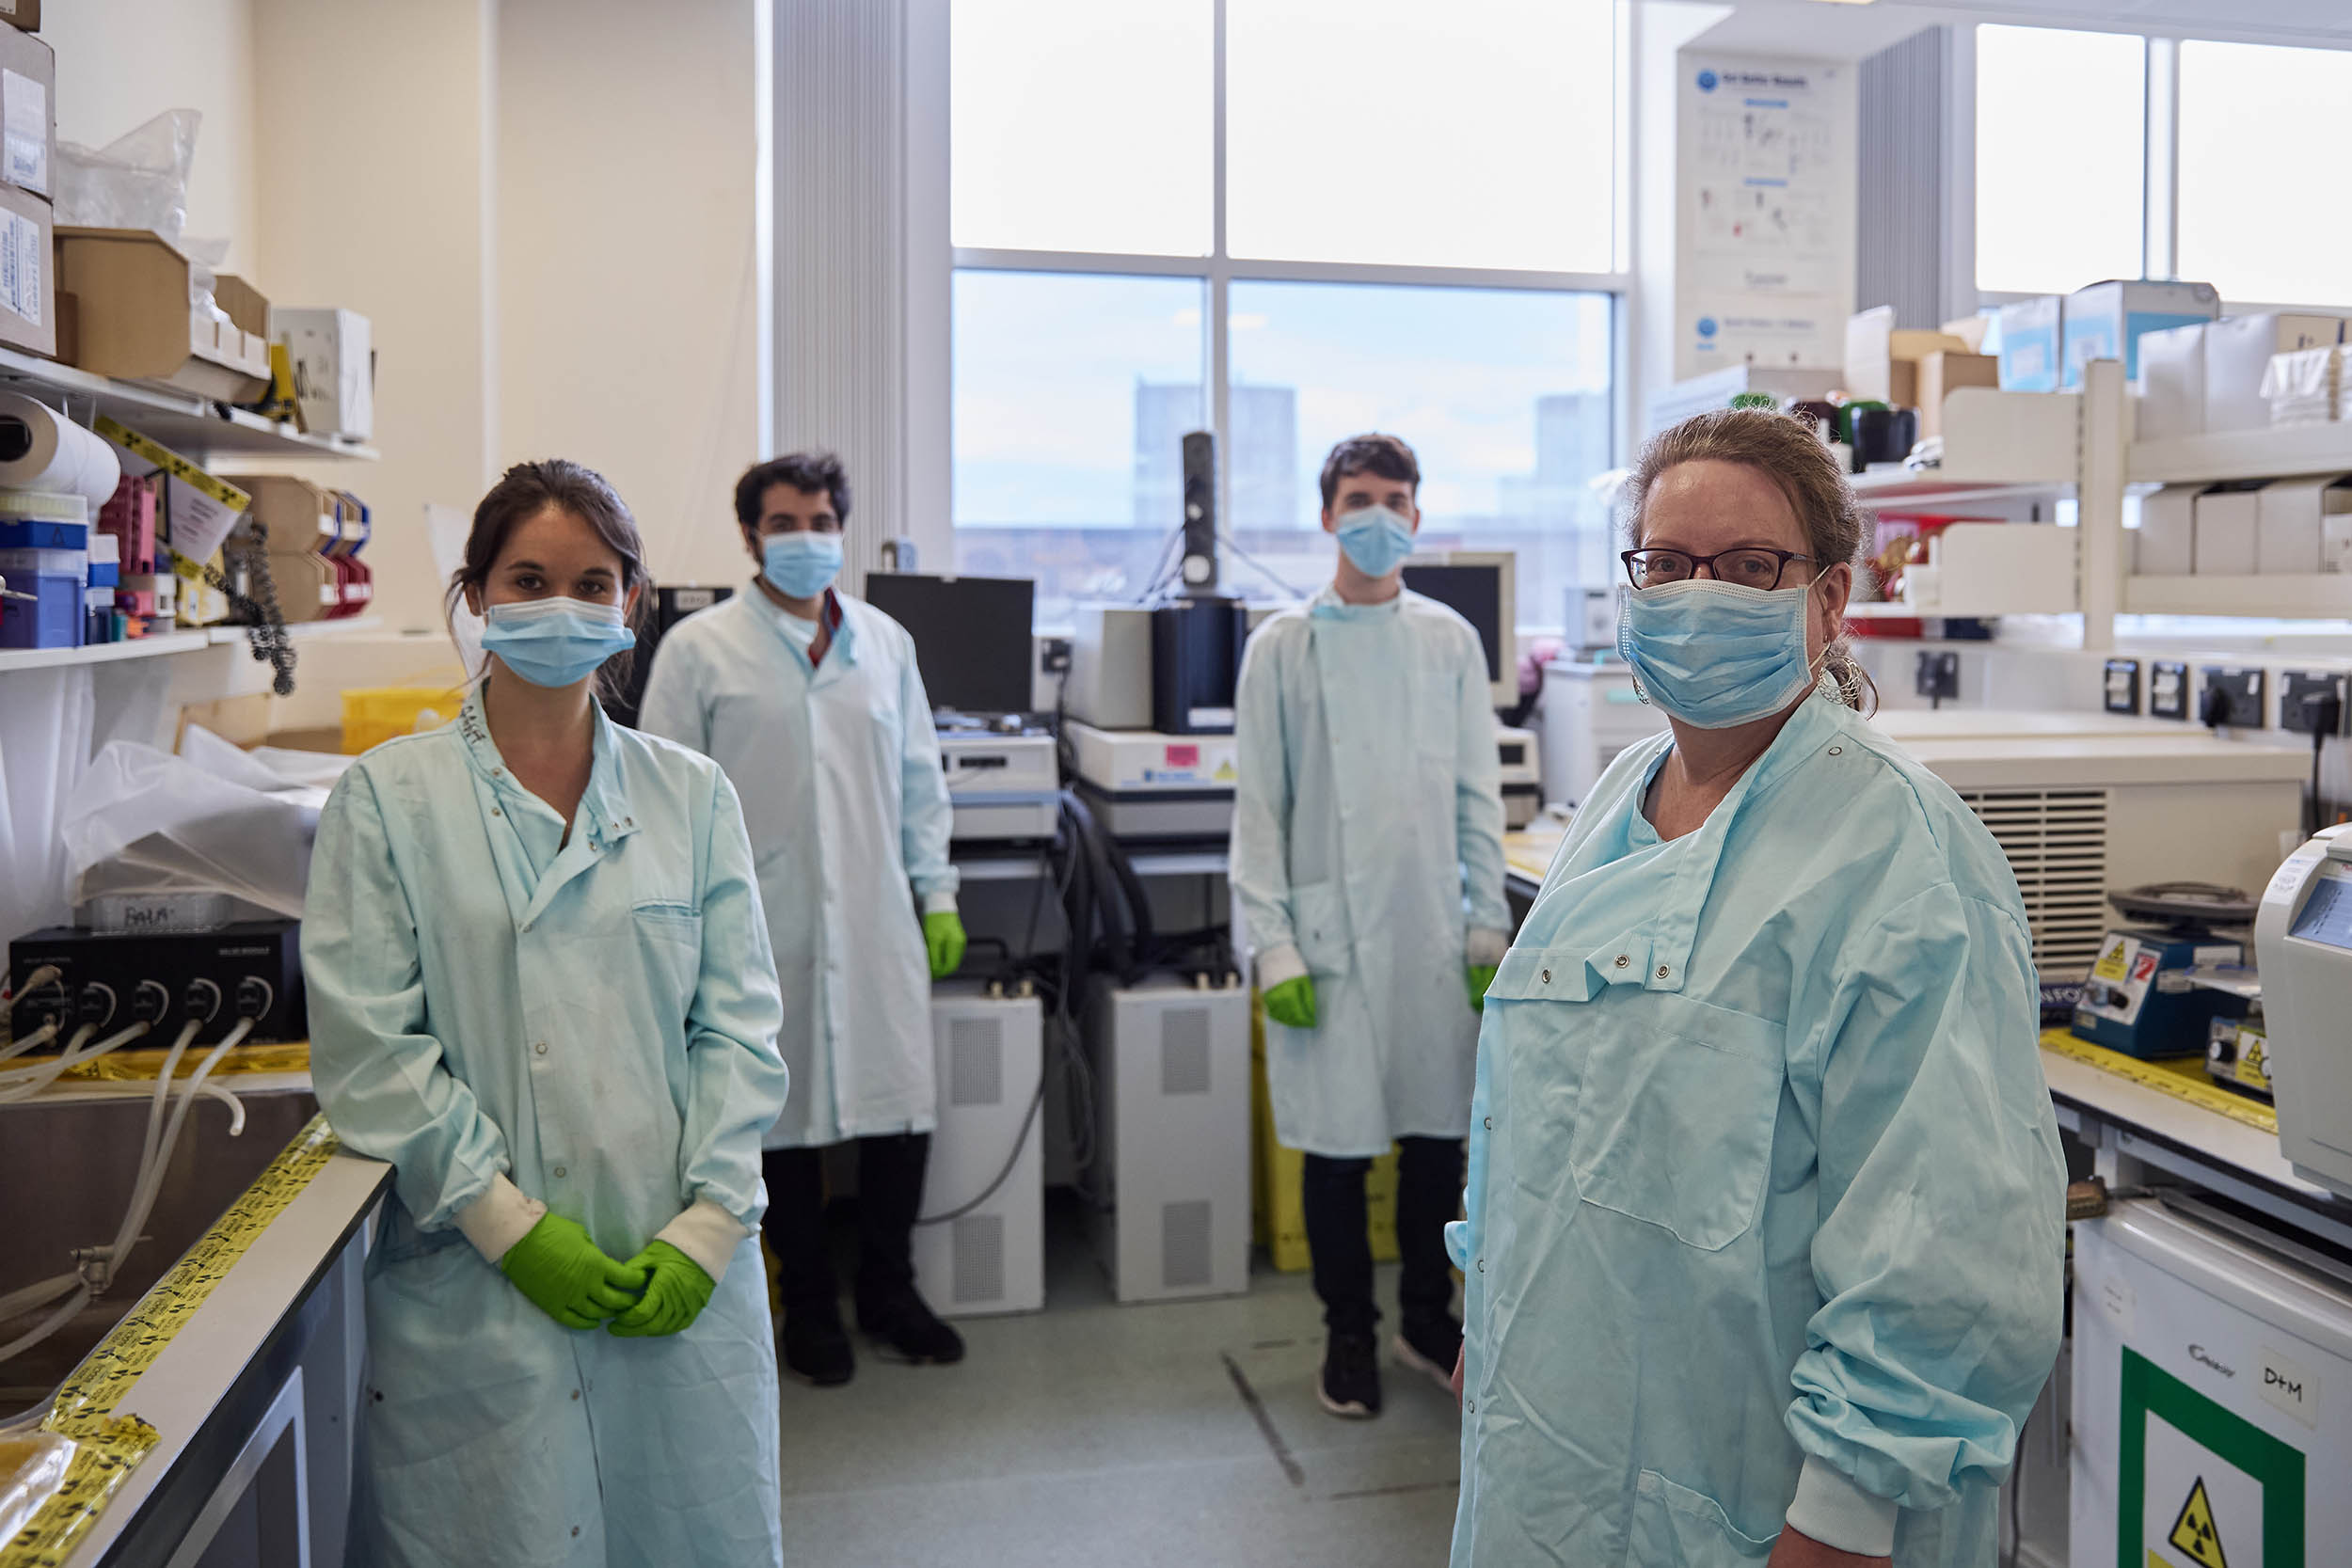 Our approach to research - researchers in the lab wearing masks